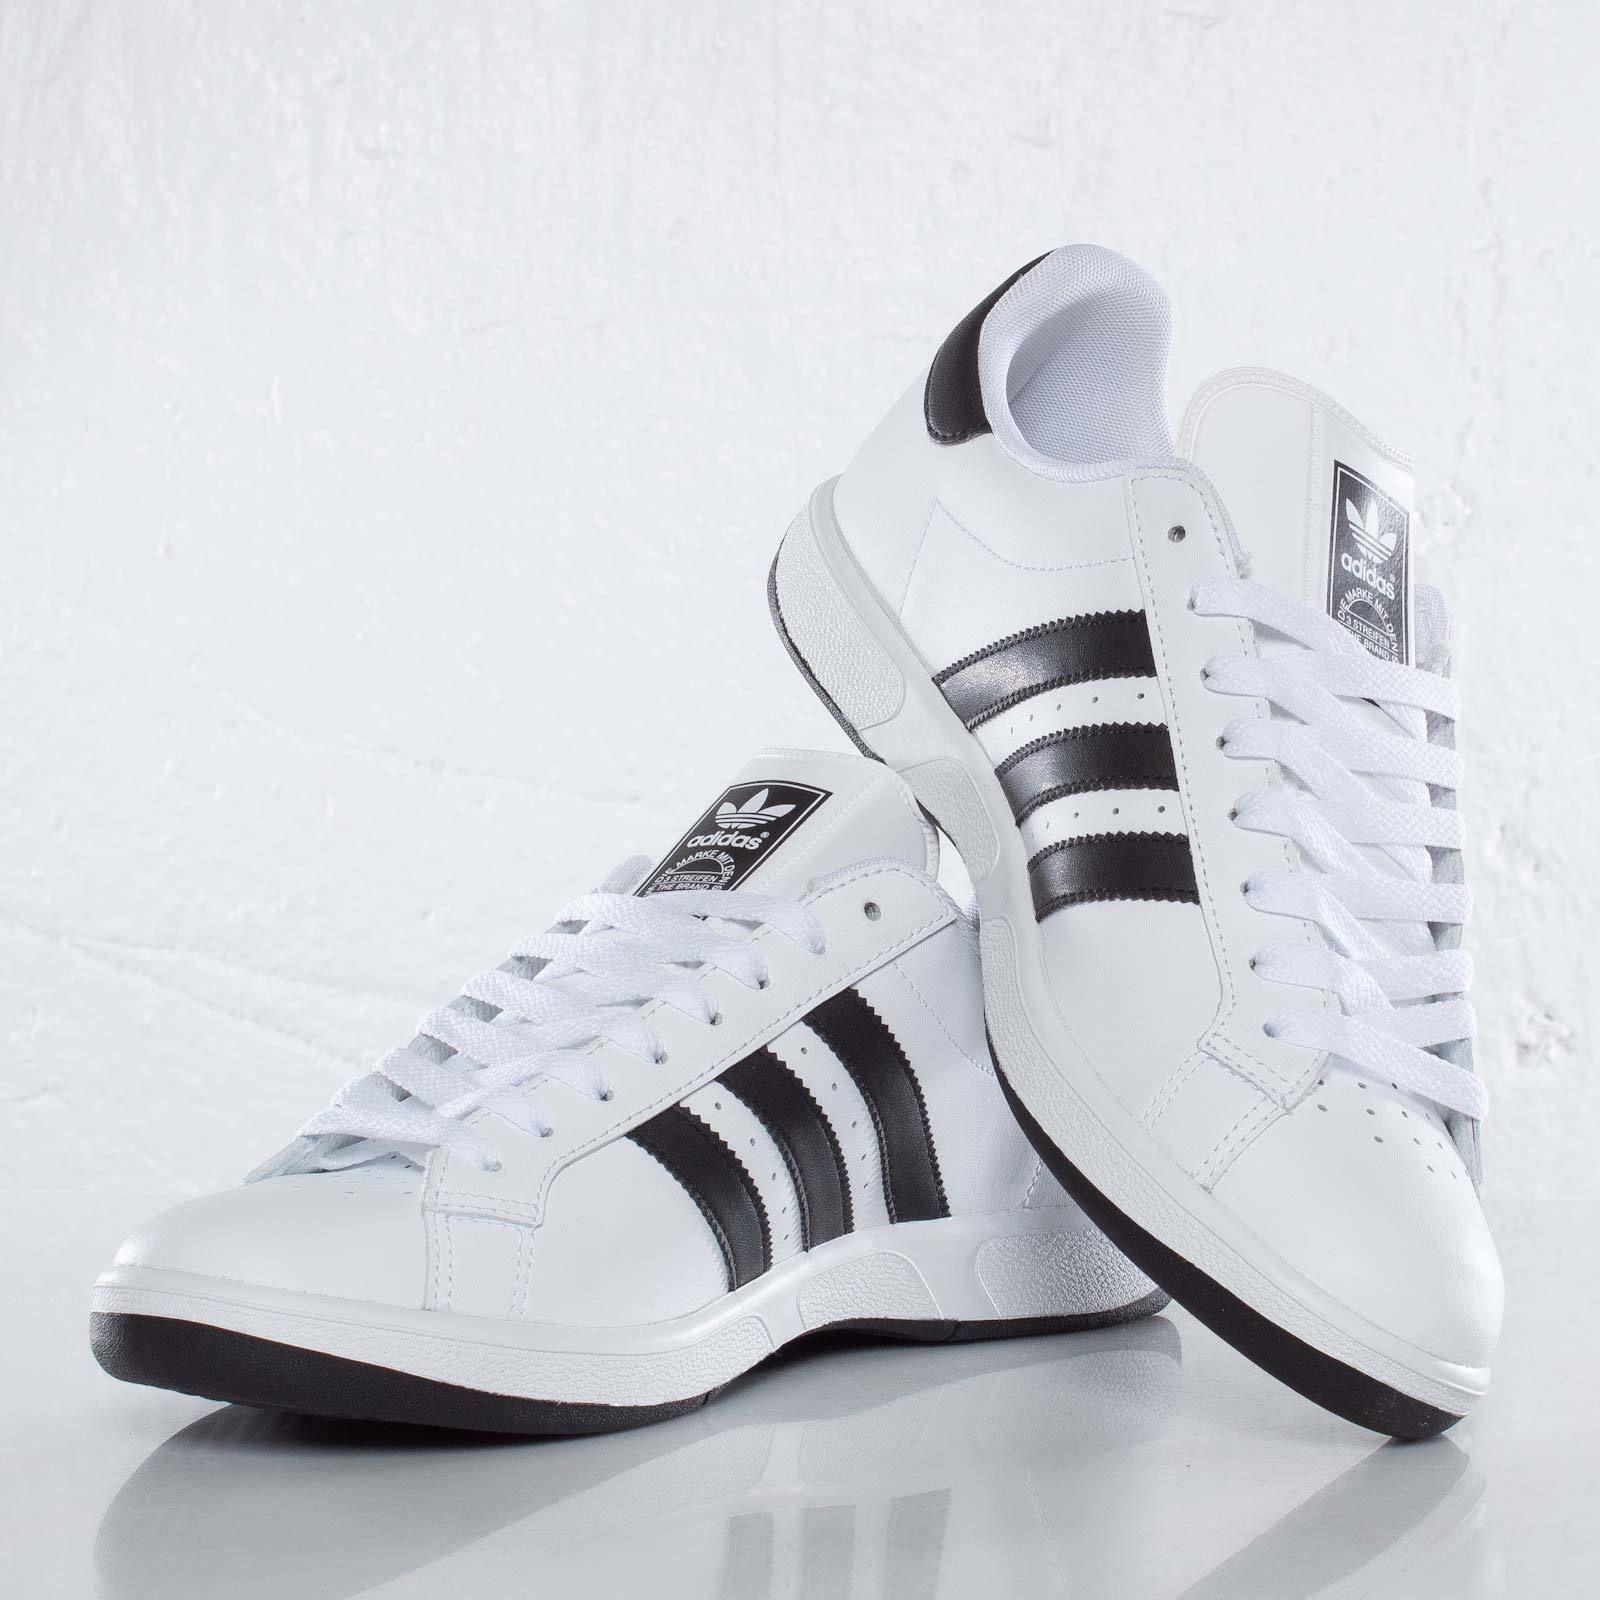 adidas white shoes price list